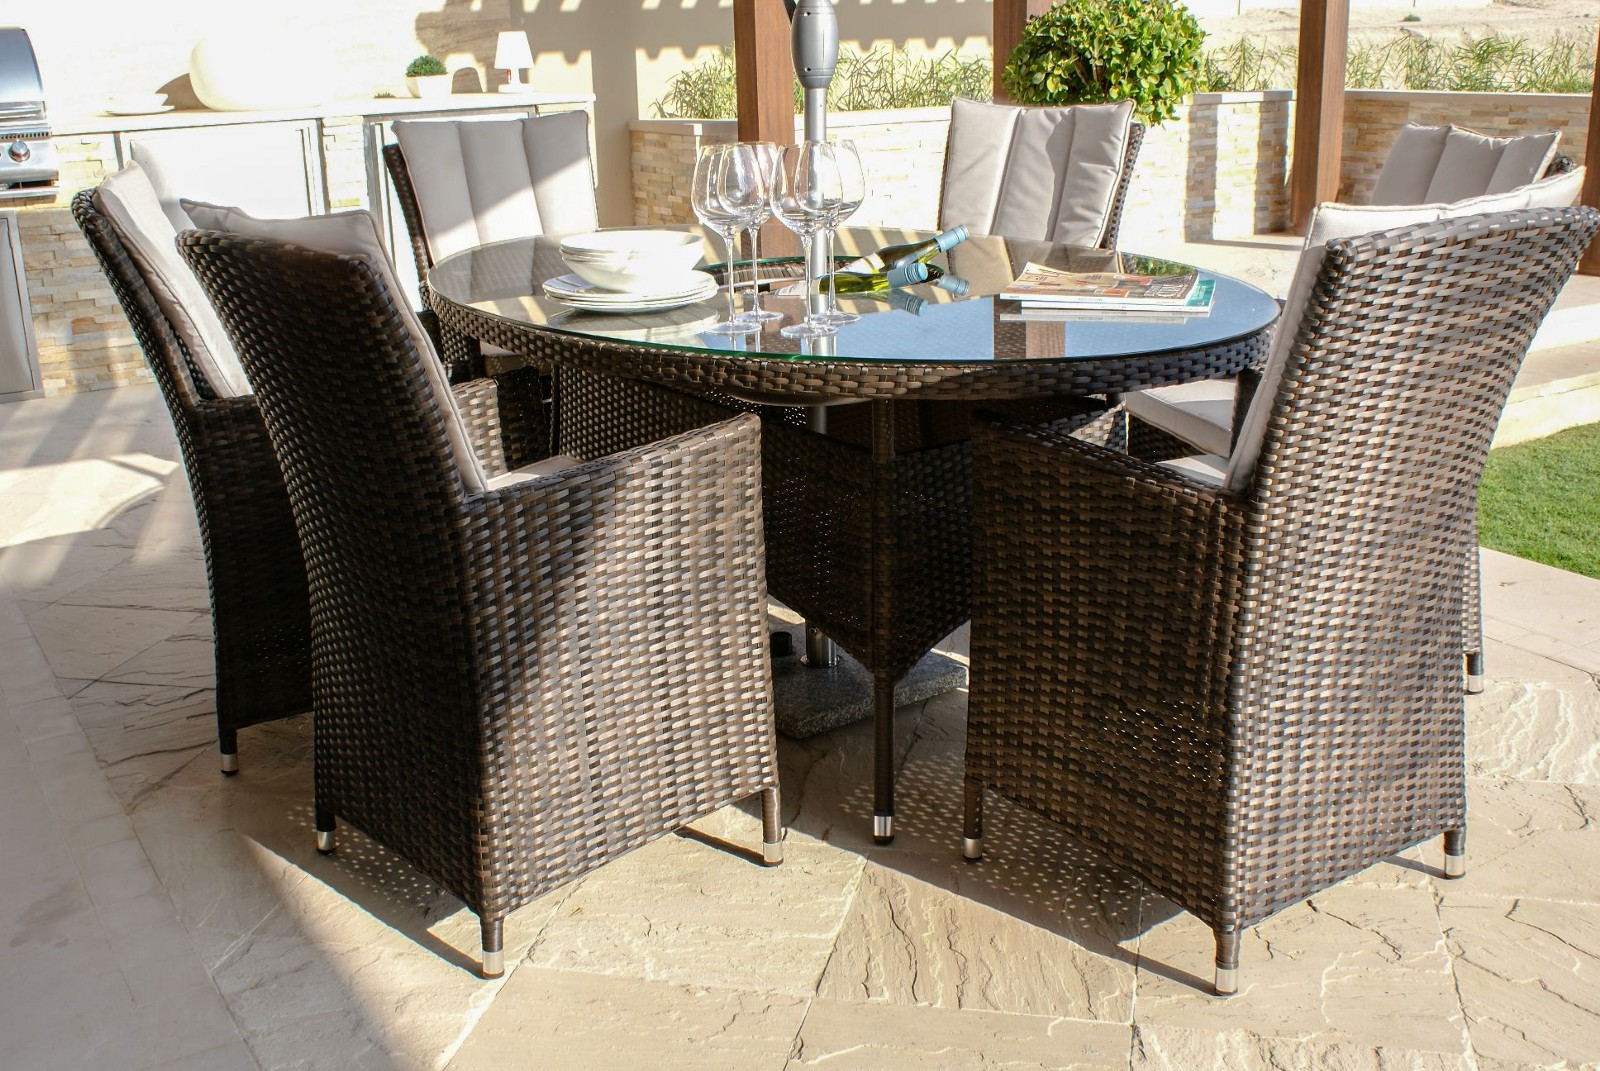 Maze Rattan La Seat Oval Dining Set With Ice Bucket And Lazy Susan - 6 seat oval dining table